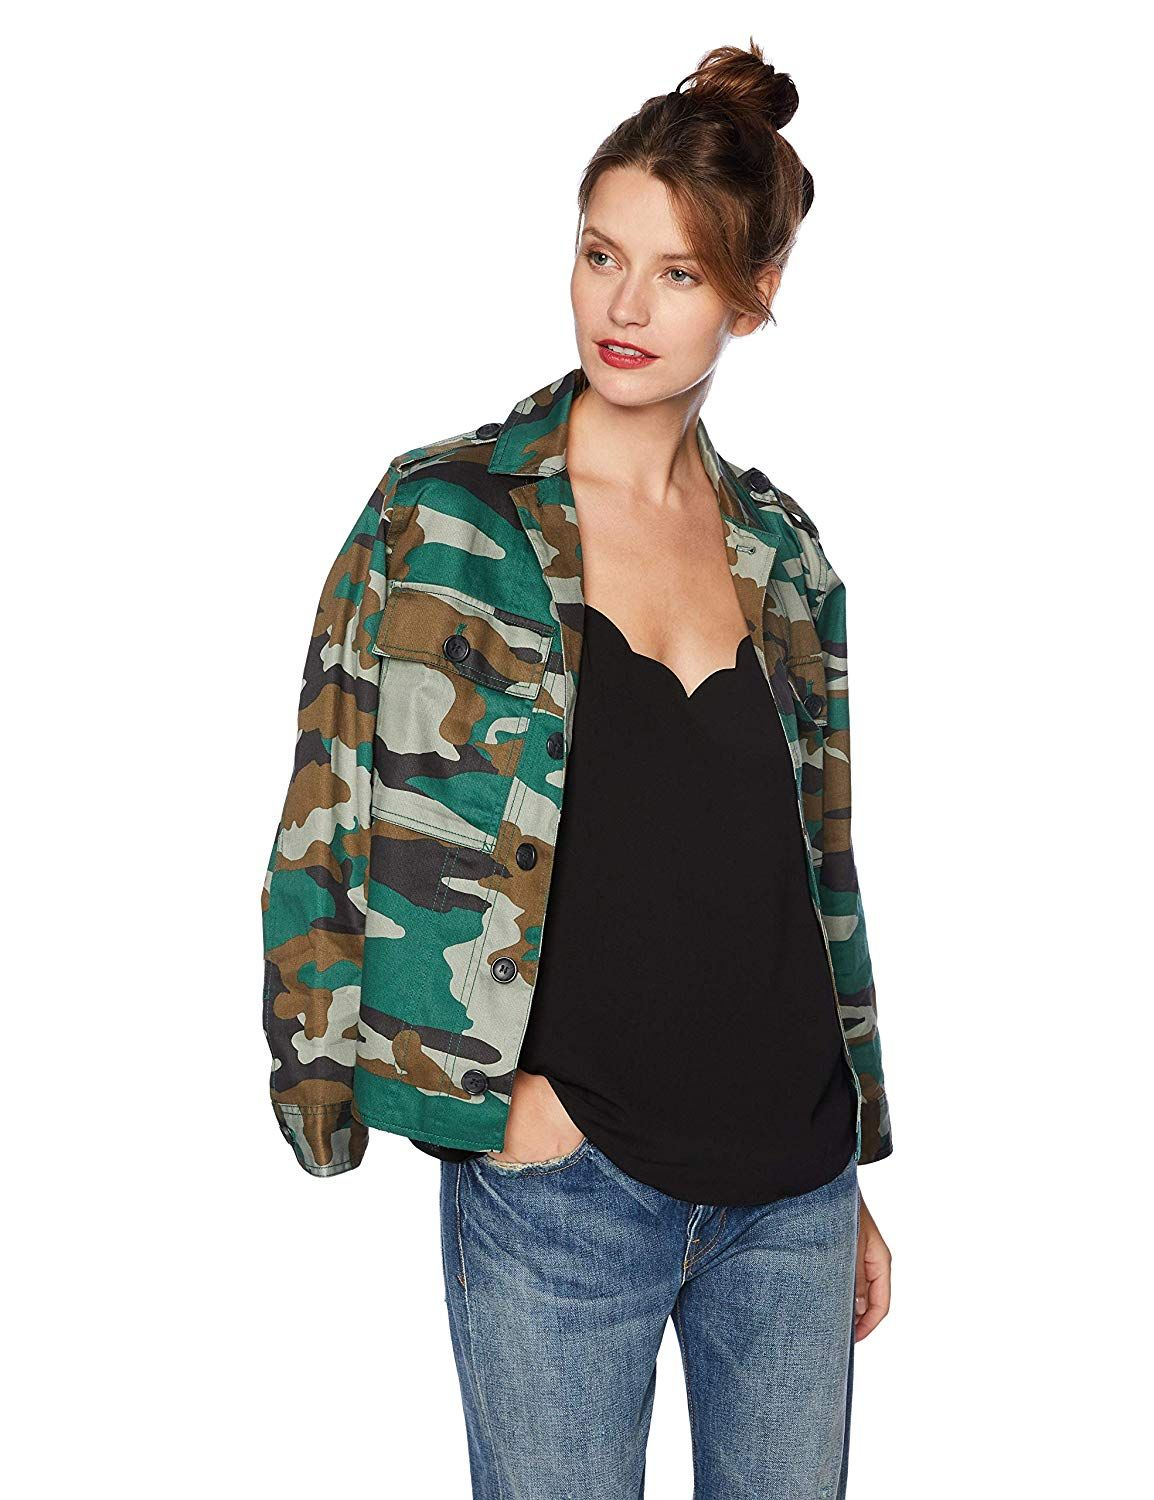 437e70a15455d J. Crew is now on Amazon!!! I'm so excited about this! This item is ...